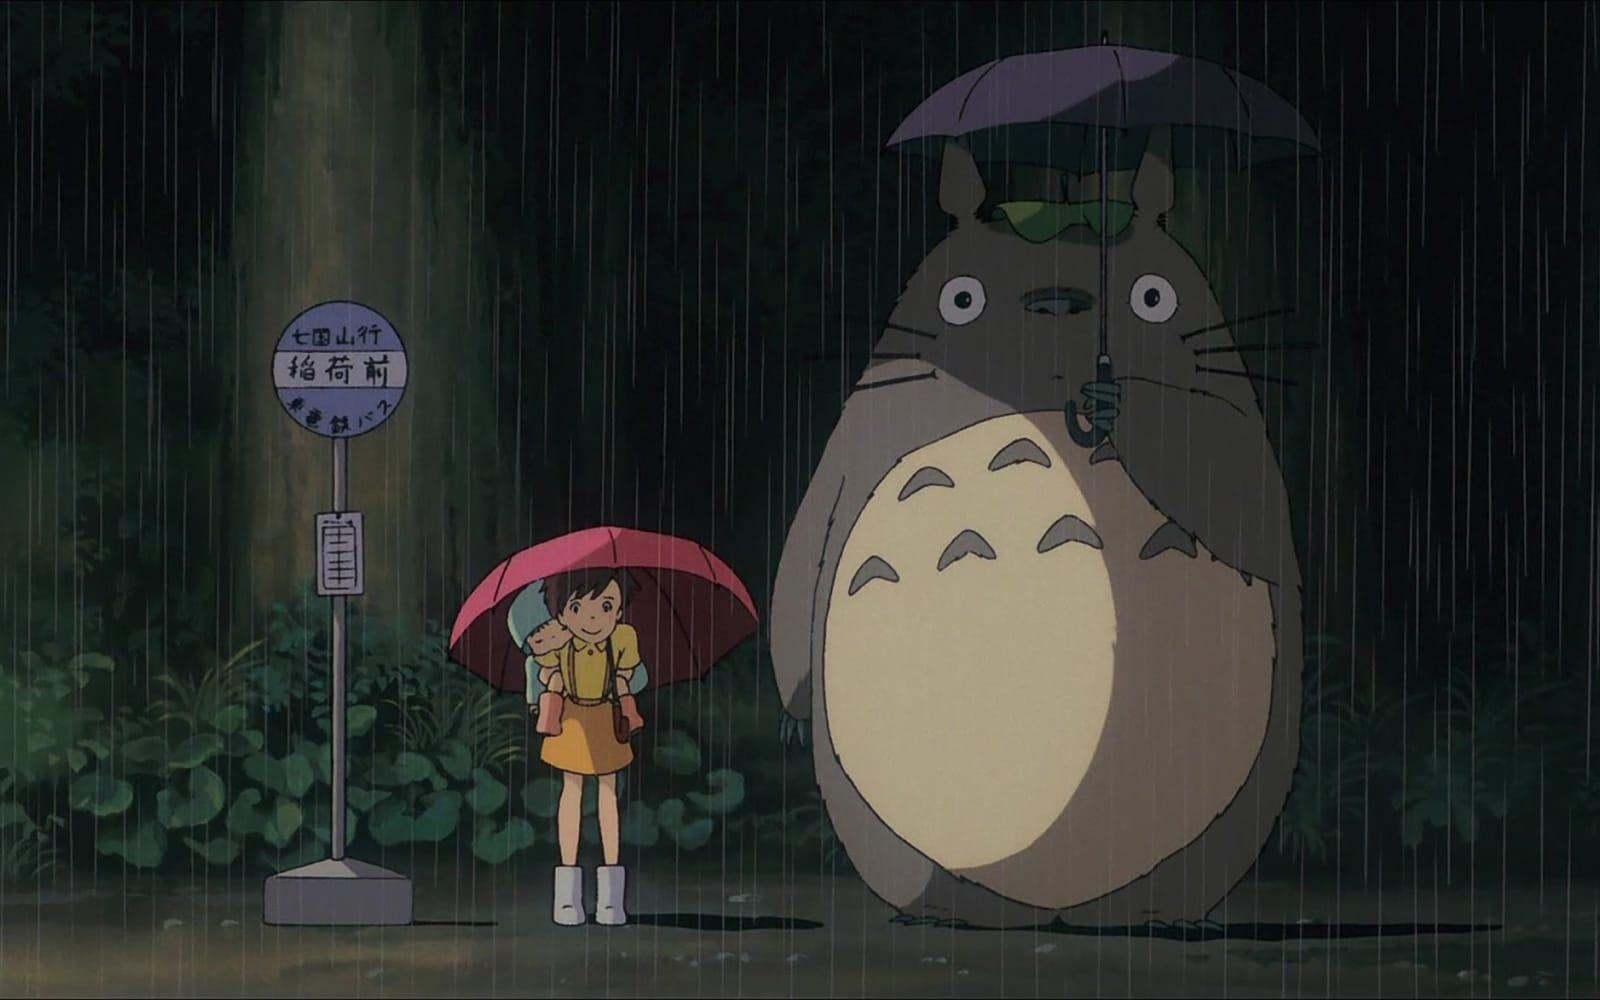 MY NEIGHBOR TORTORO (1988 / DCP) - Sun Feb 17th 12pm, 2pm, 4pm & 6pm / Frida Cinema, Santa Ana CAWhimsical and moving, My Neighbor Totoro was a smash hit upon its initial release, and played a large part in making Miyazaki and Studio Ghibli a household name on both sides of the Pacific. With its environmentalist undertones and earnest, innocent sensibility, it's easy to see why it charmed audiences worldwide, and why it continues to do so to this day.More info HERE